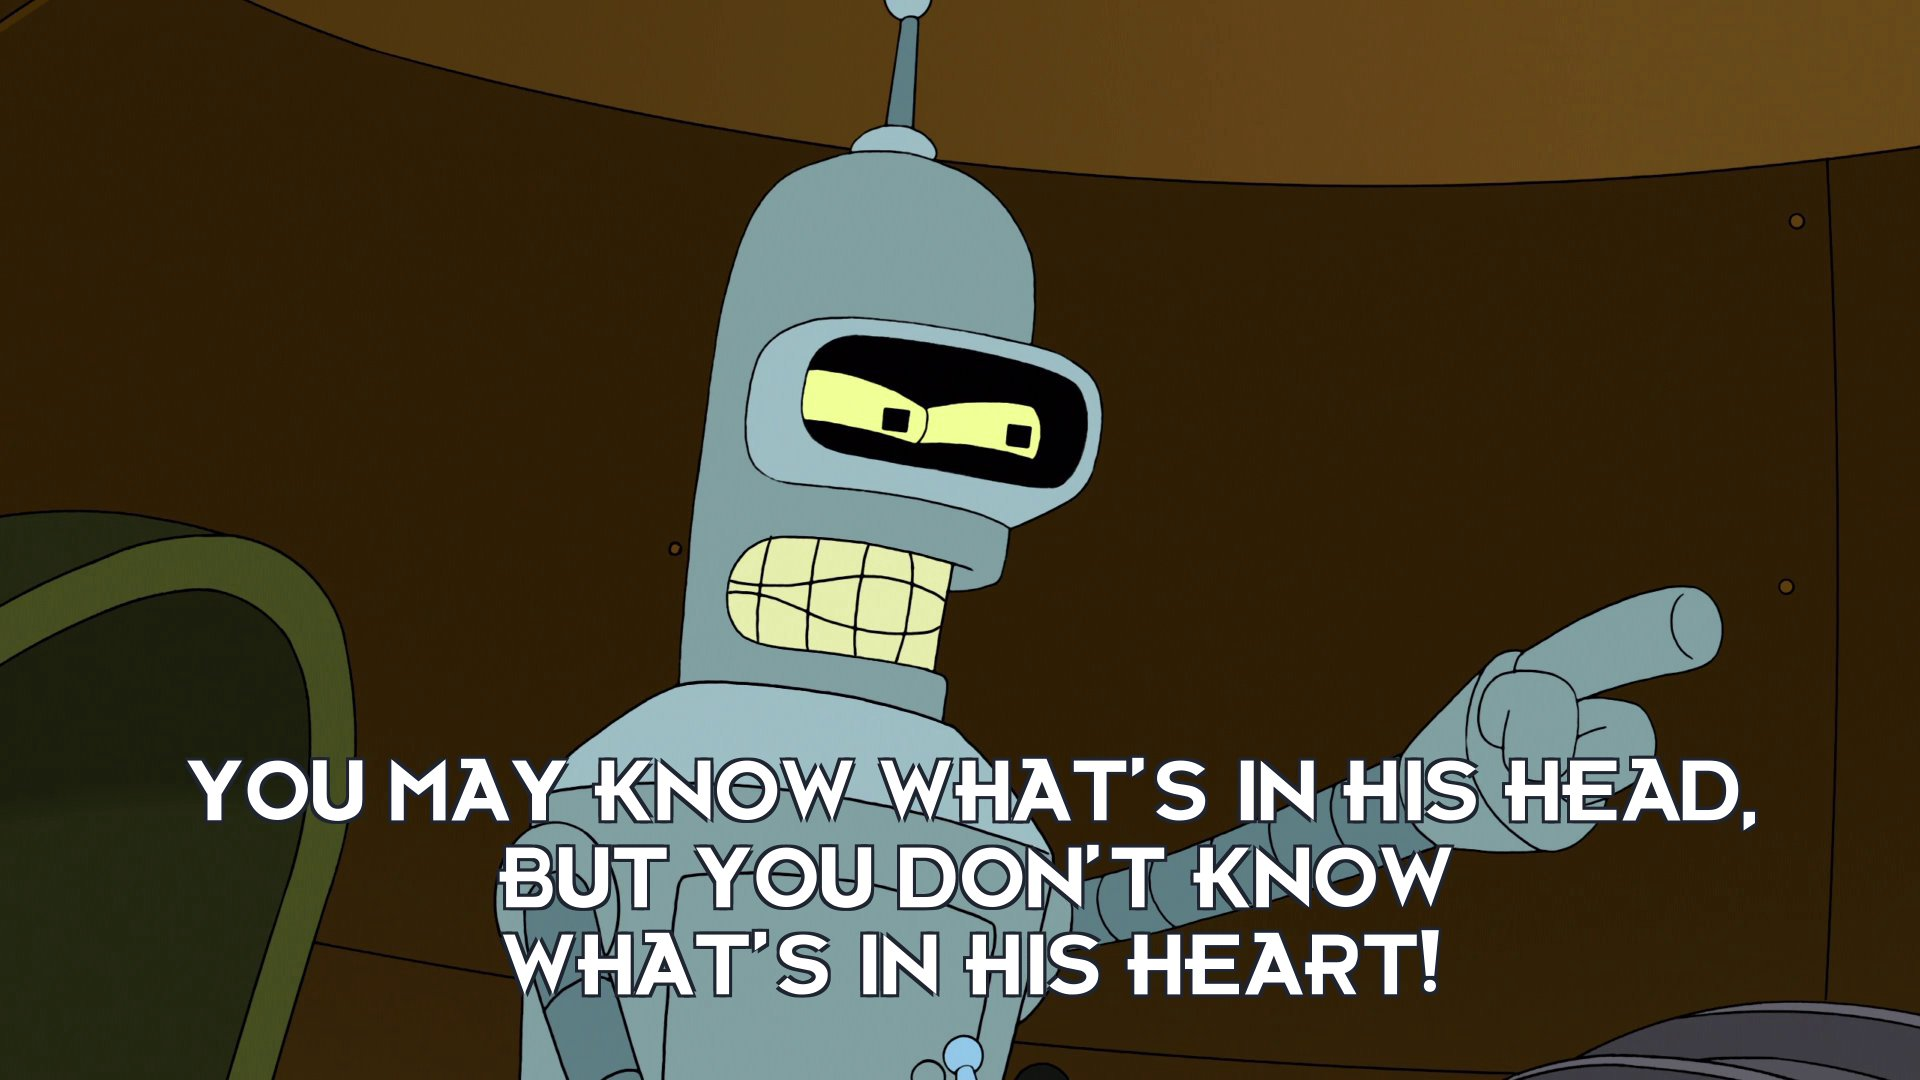 Bender Bending Rodriguez: You may know what's in his head, but you don't know what's in his heart!